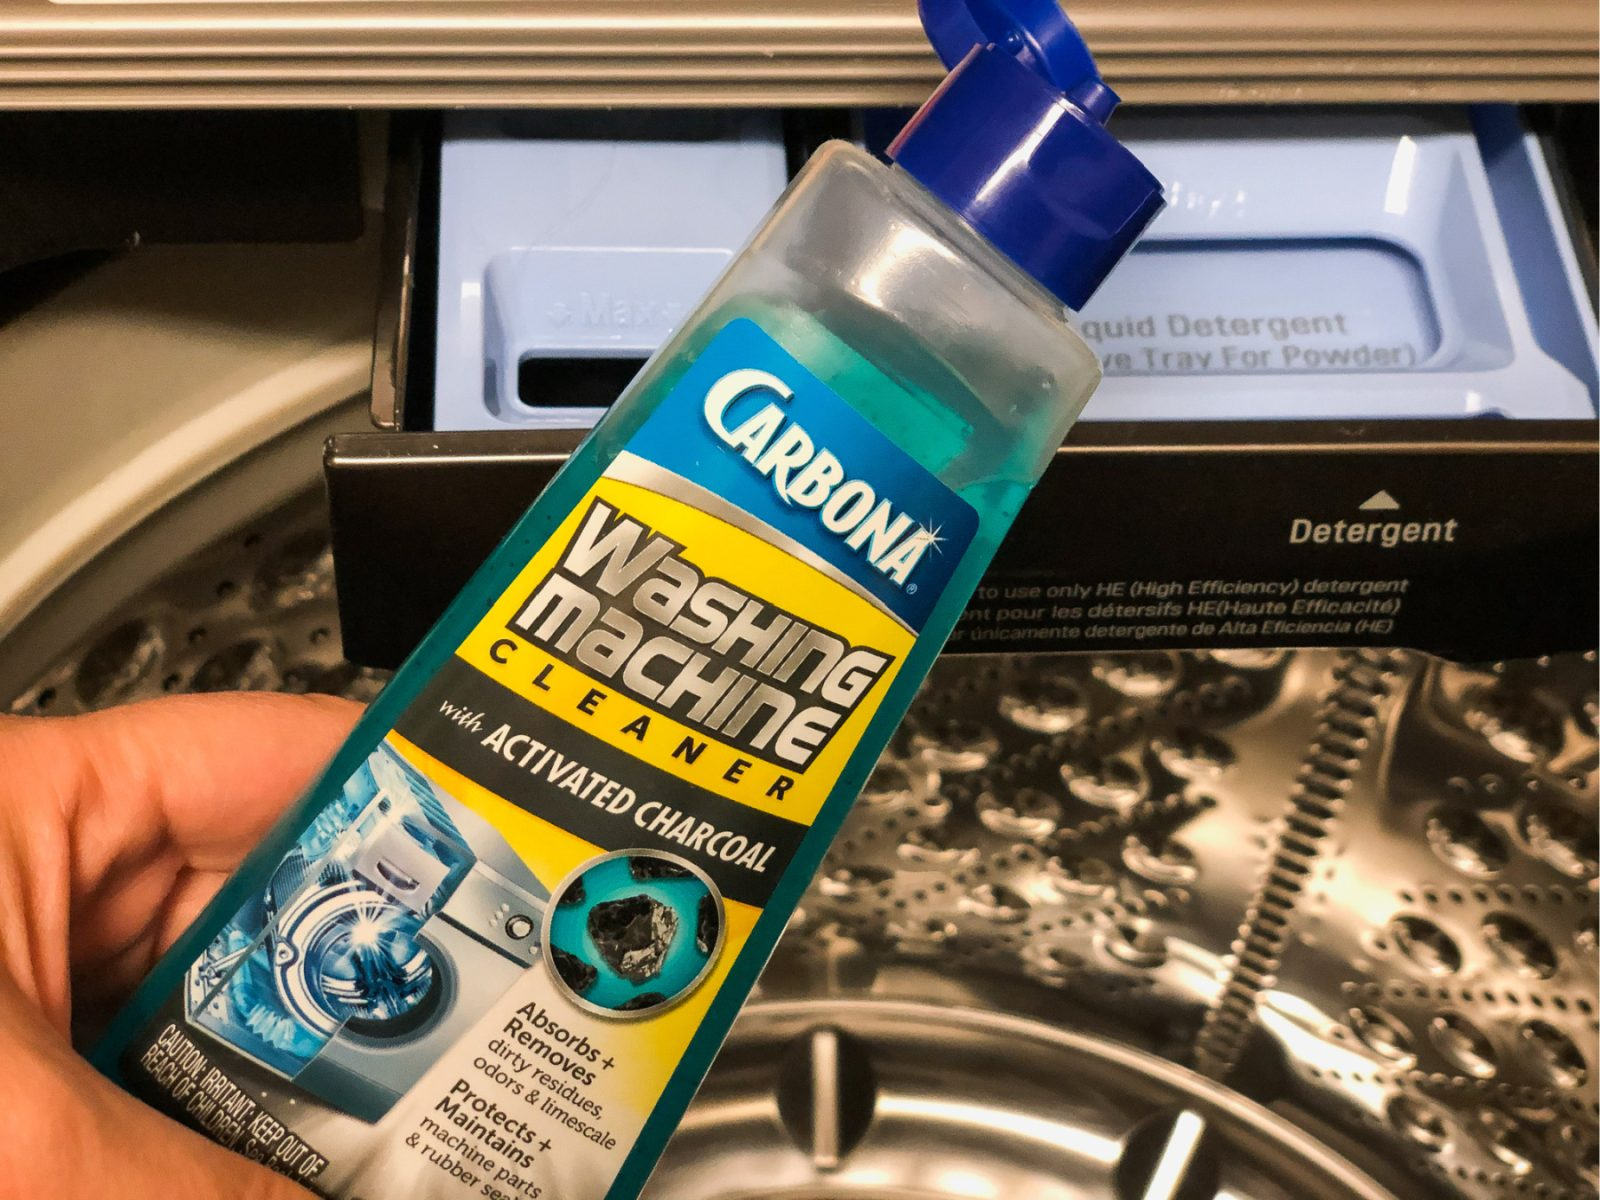 Carbona Washing Machine Cleaner As Low As 65¢ At Publix on I Heart Publix 3